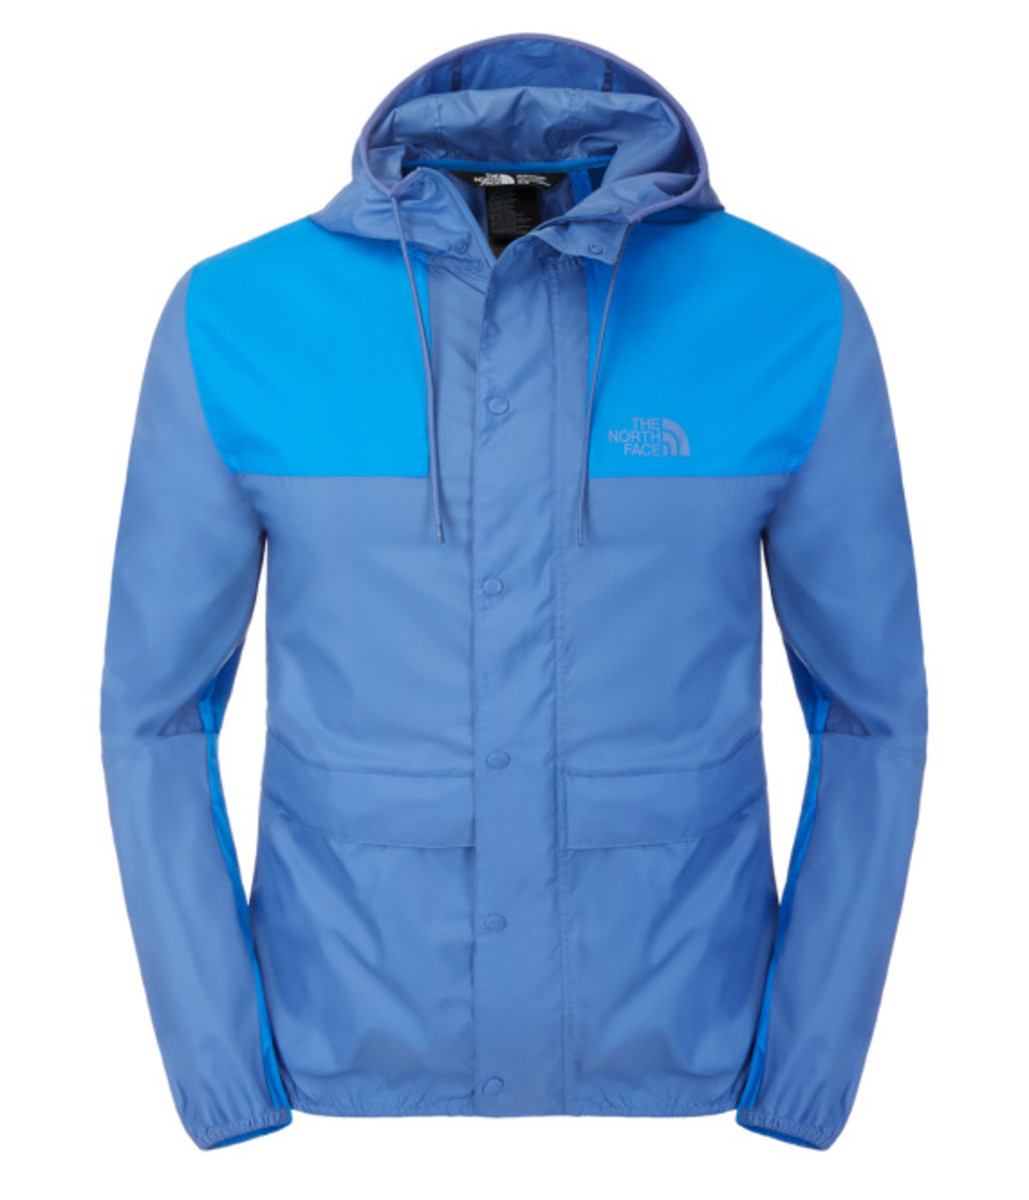 the-north-face-mountain-jacket-14